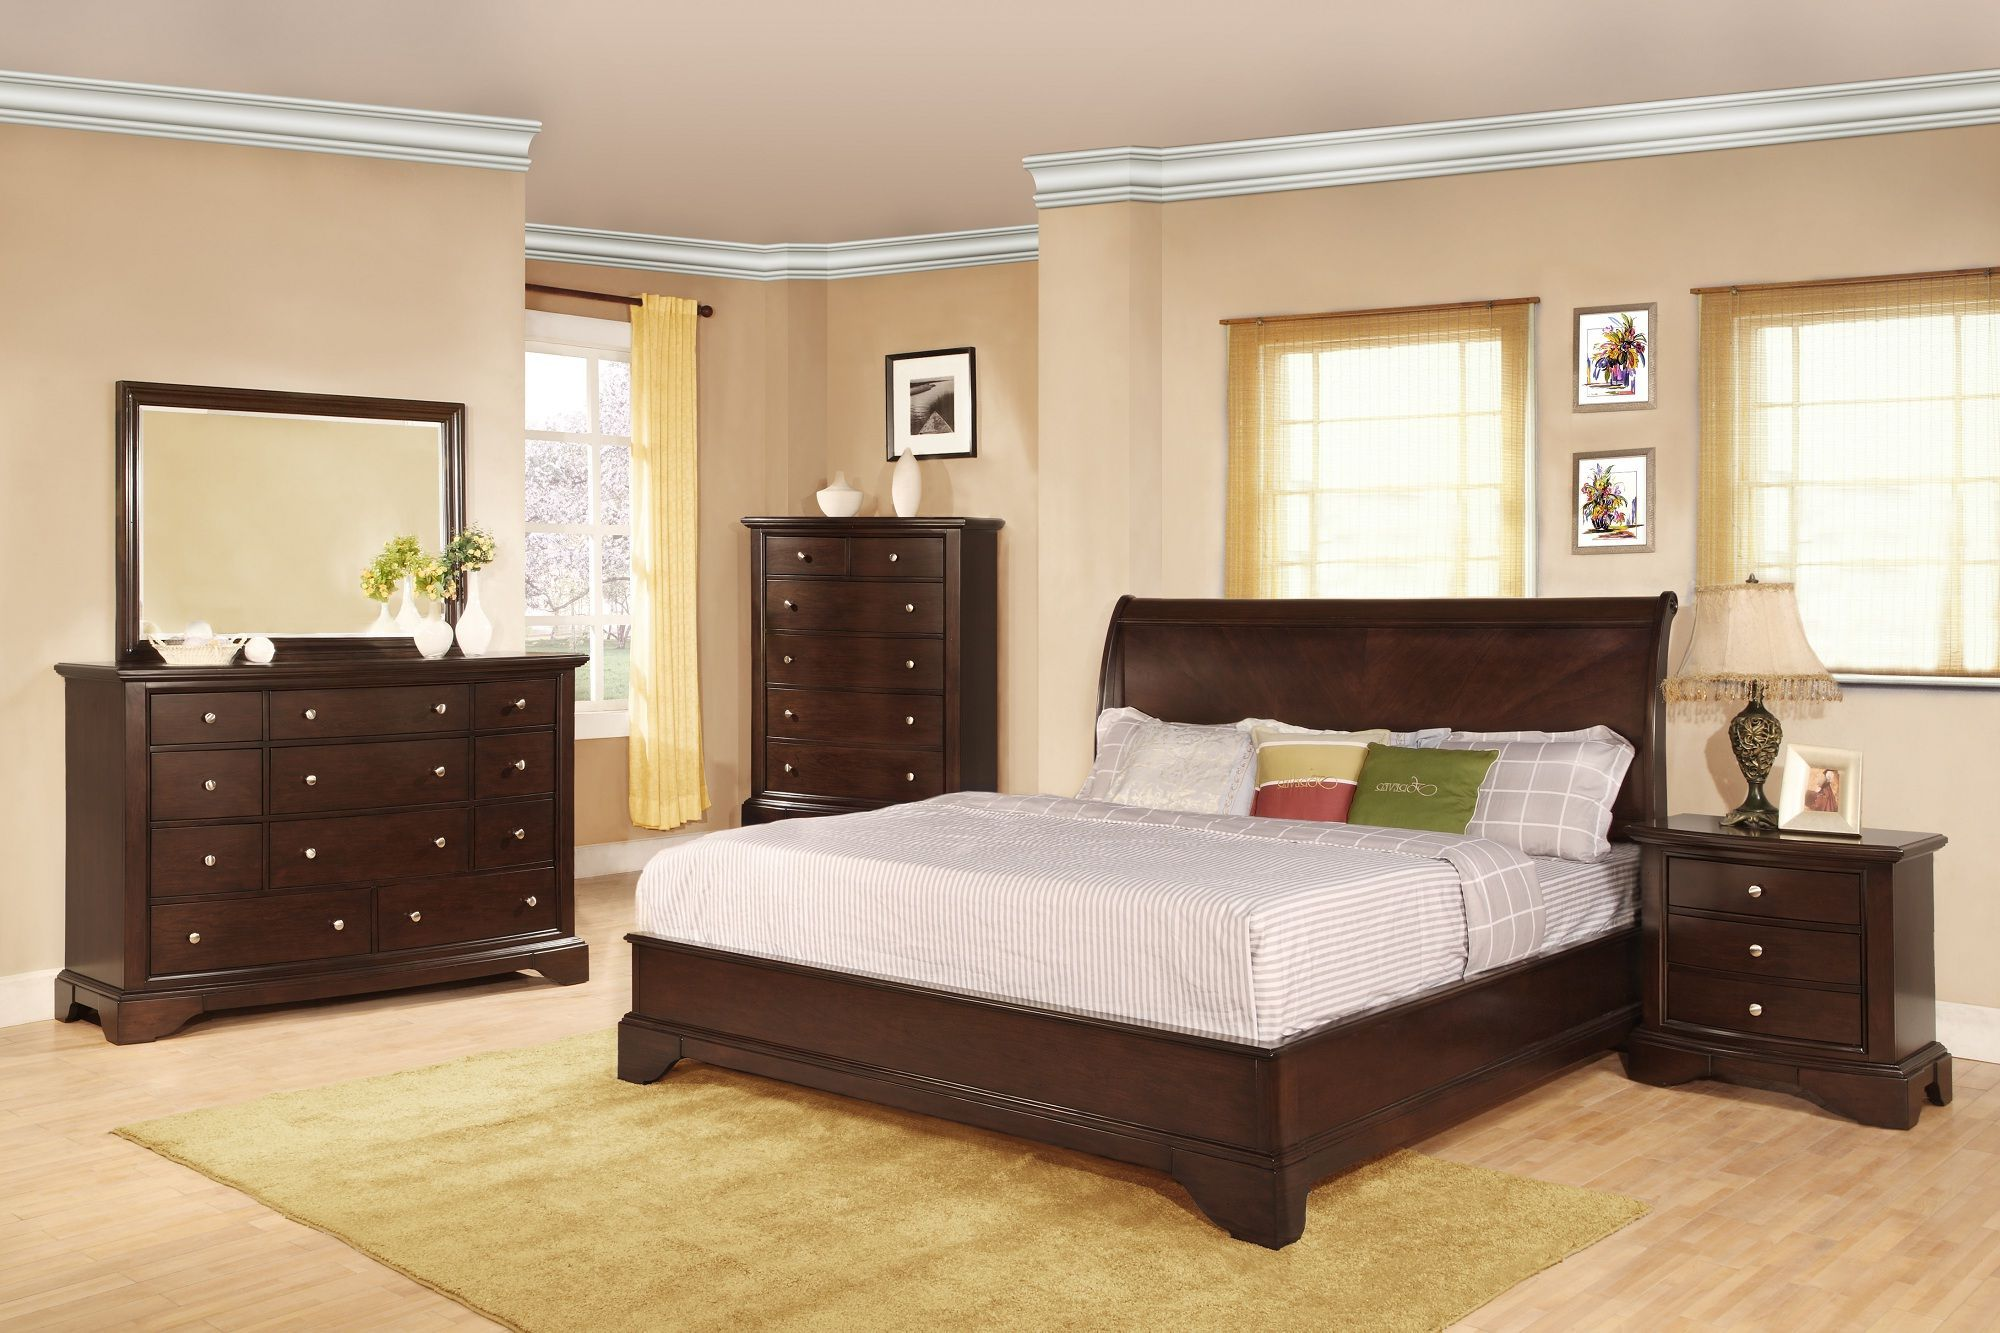 17 Extreme Bedroom Set Modern Contemporary Bedroom Set At Walmart With Sets C Cheap Bedroom Furniture Sets Cheap Bedroom Furniture Bedroom Sets Furniture King